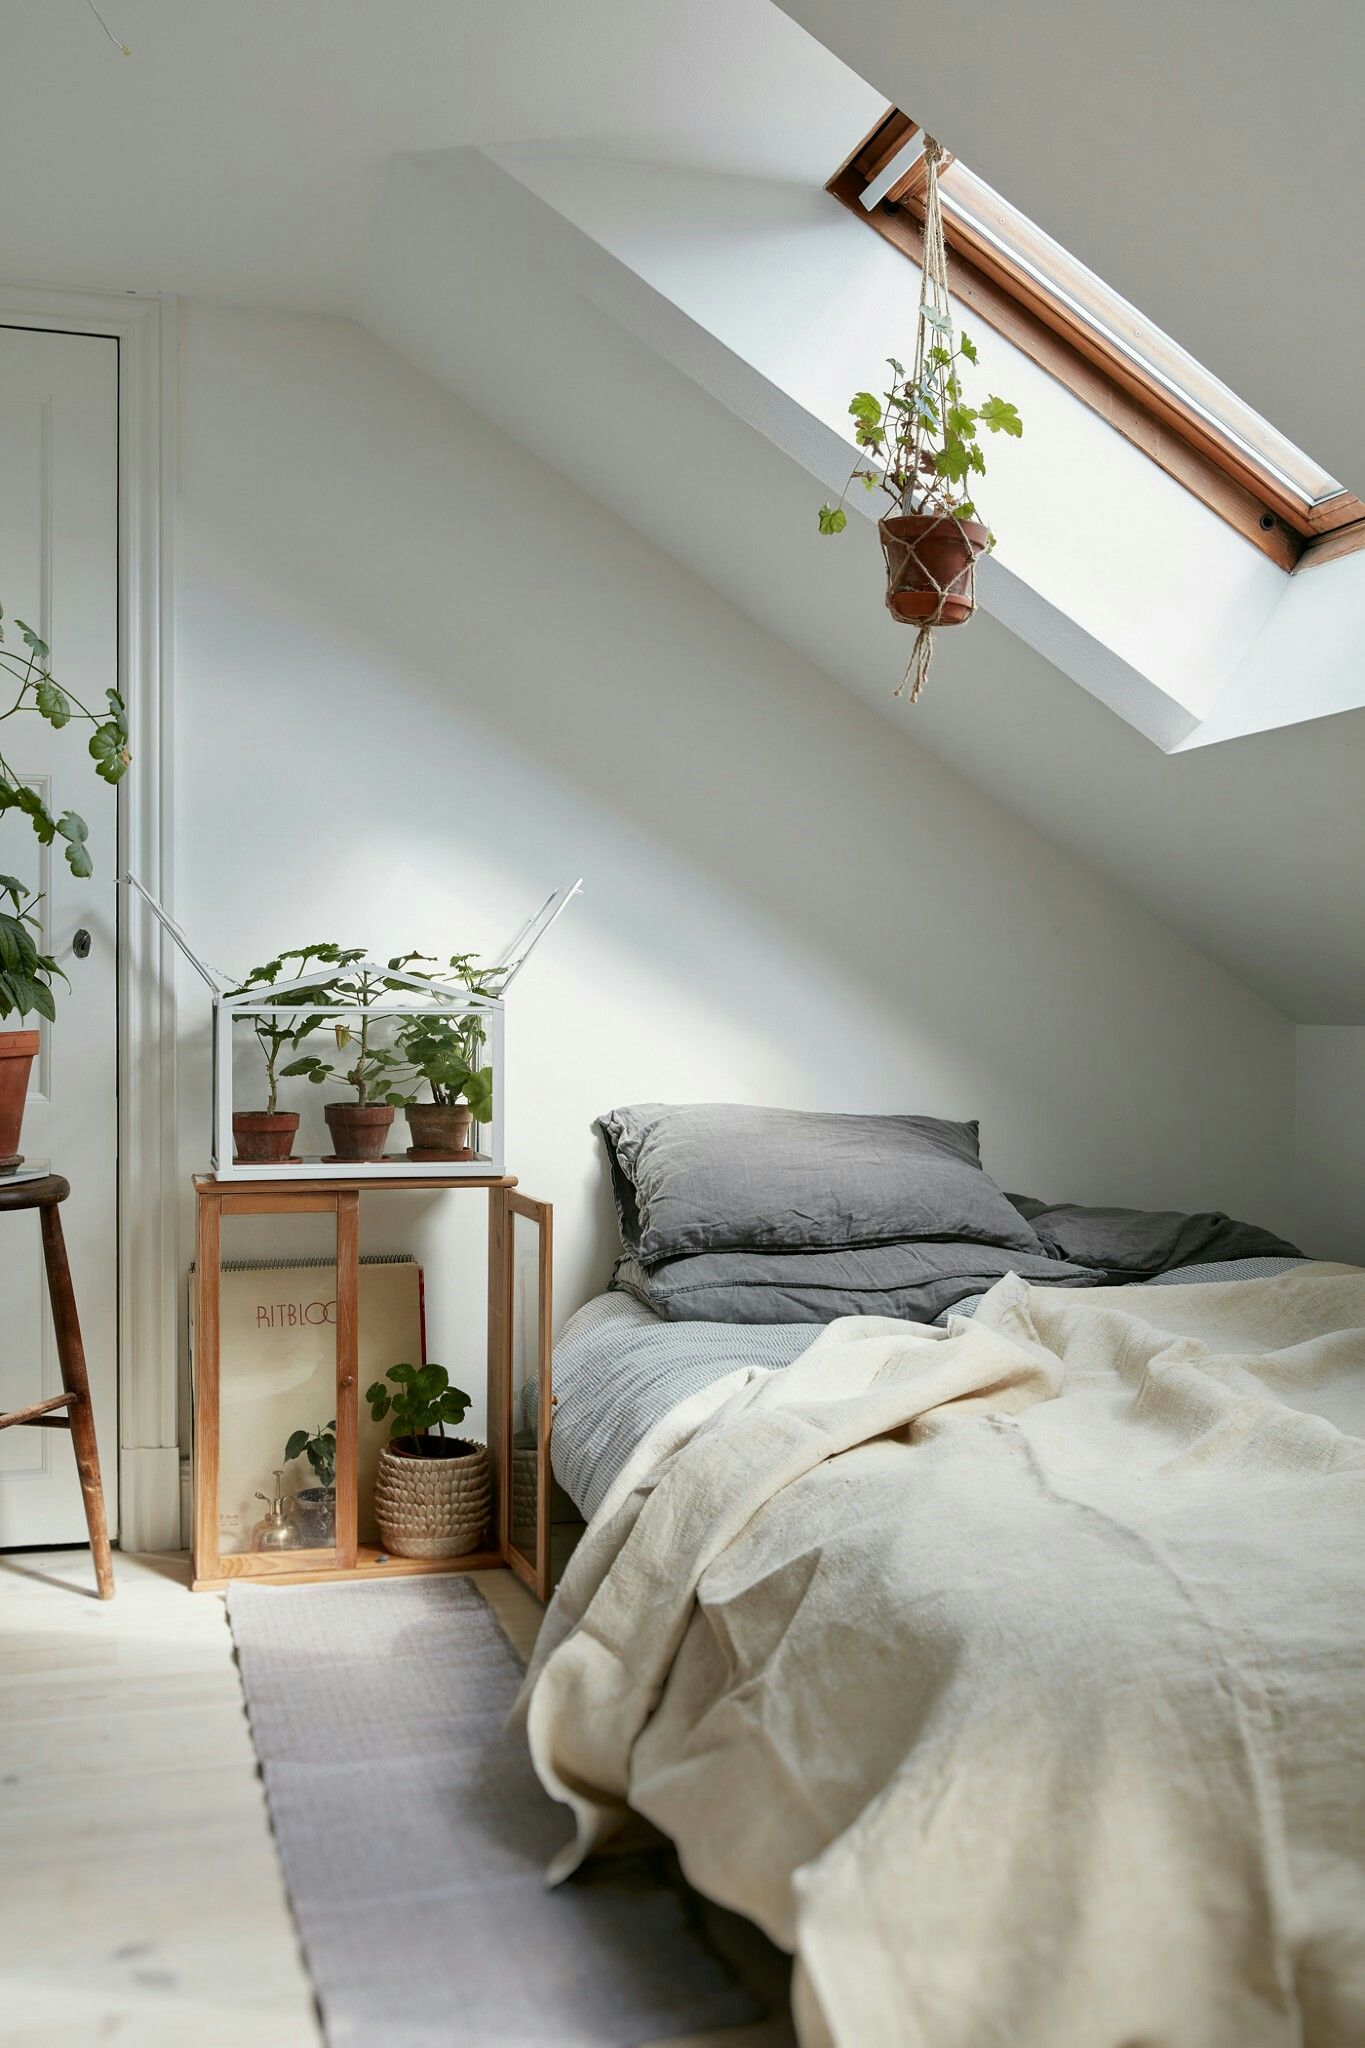 The best home decor ideias for you to get inspired! You can see ...